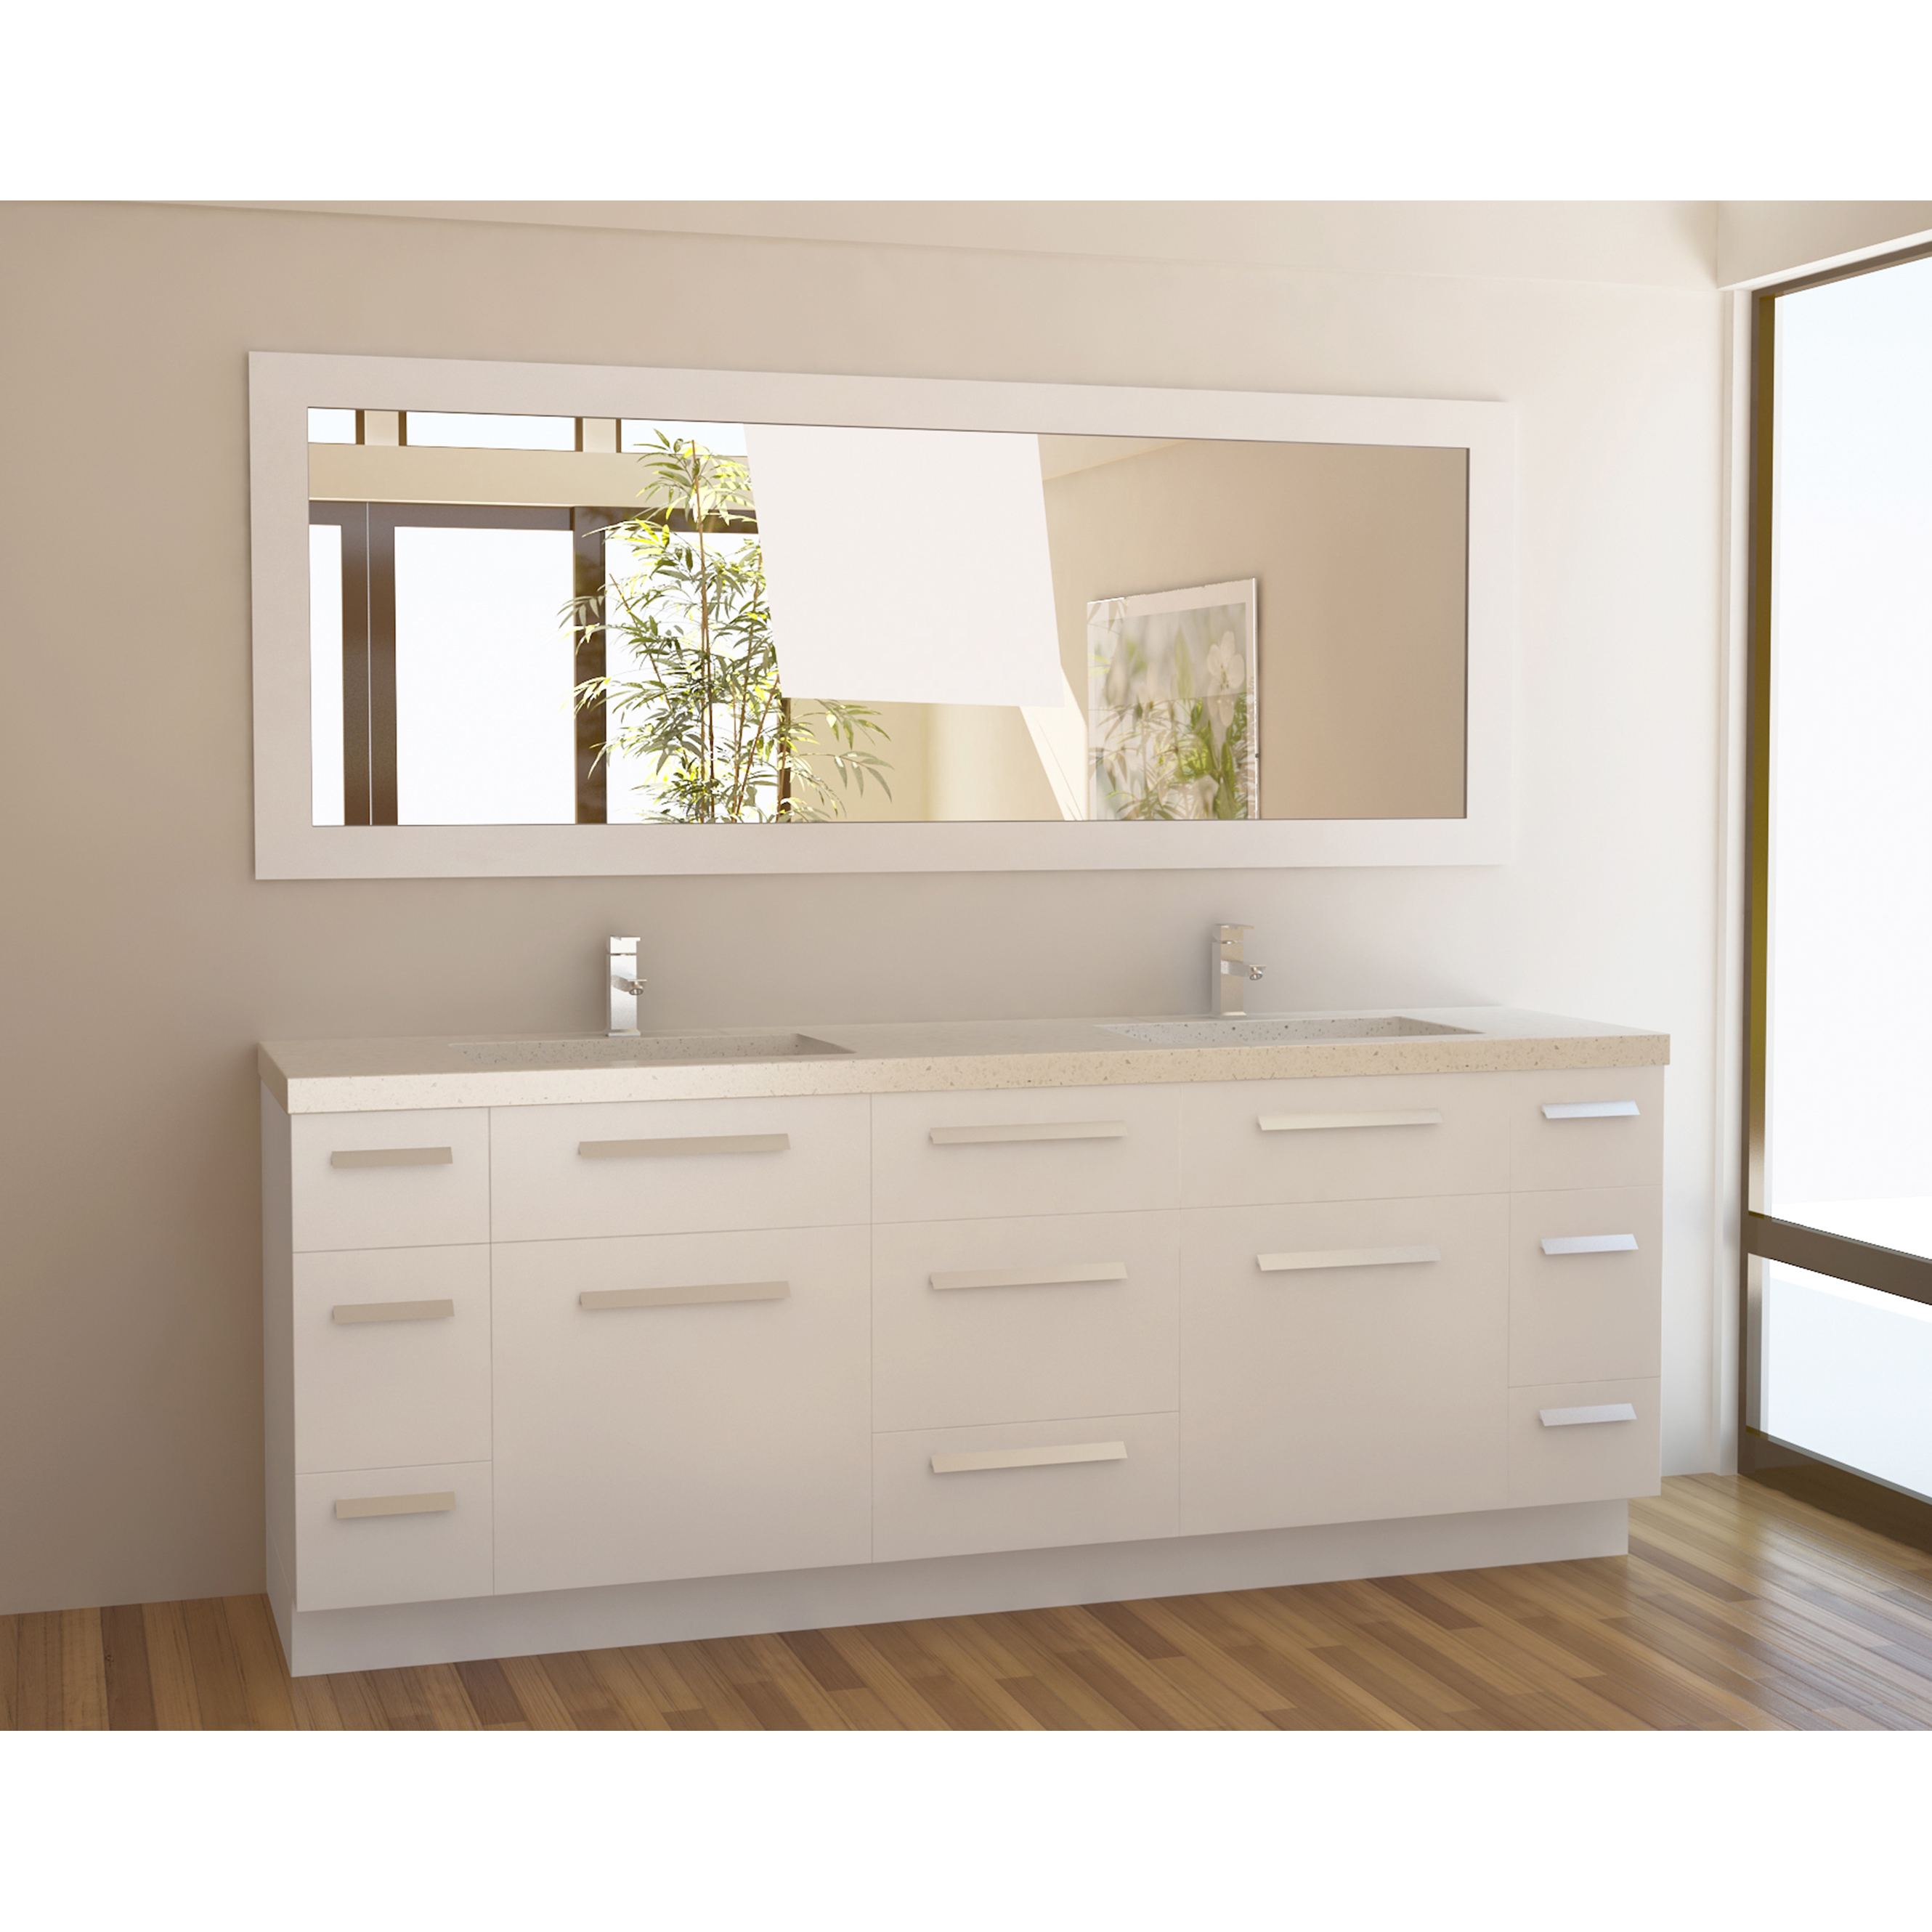 Two Sink Vanities 84 Inch Bathroom Vanity The Variants Homesfeed